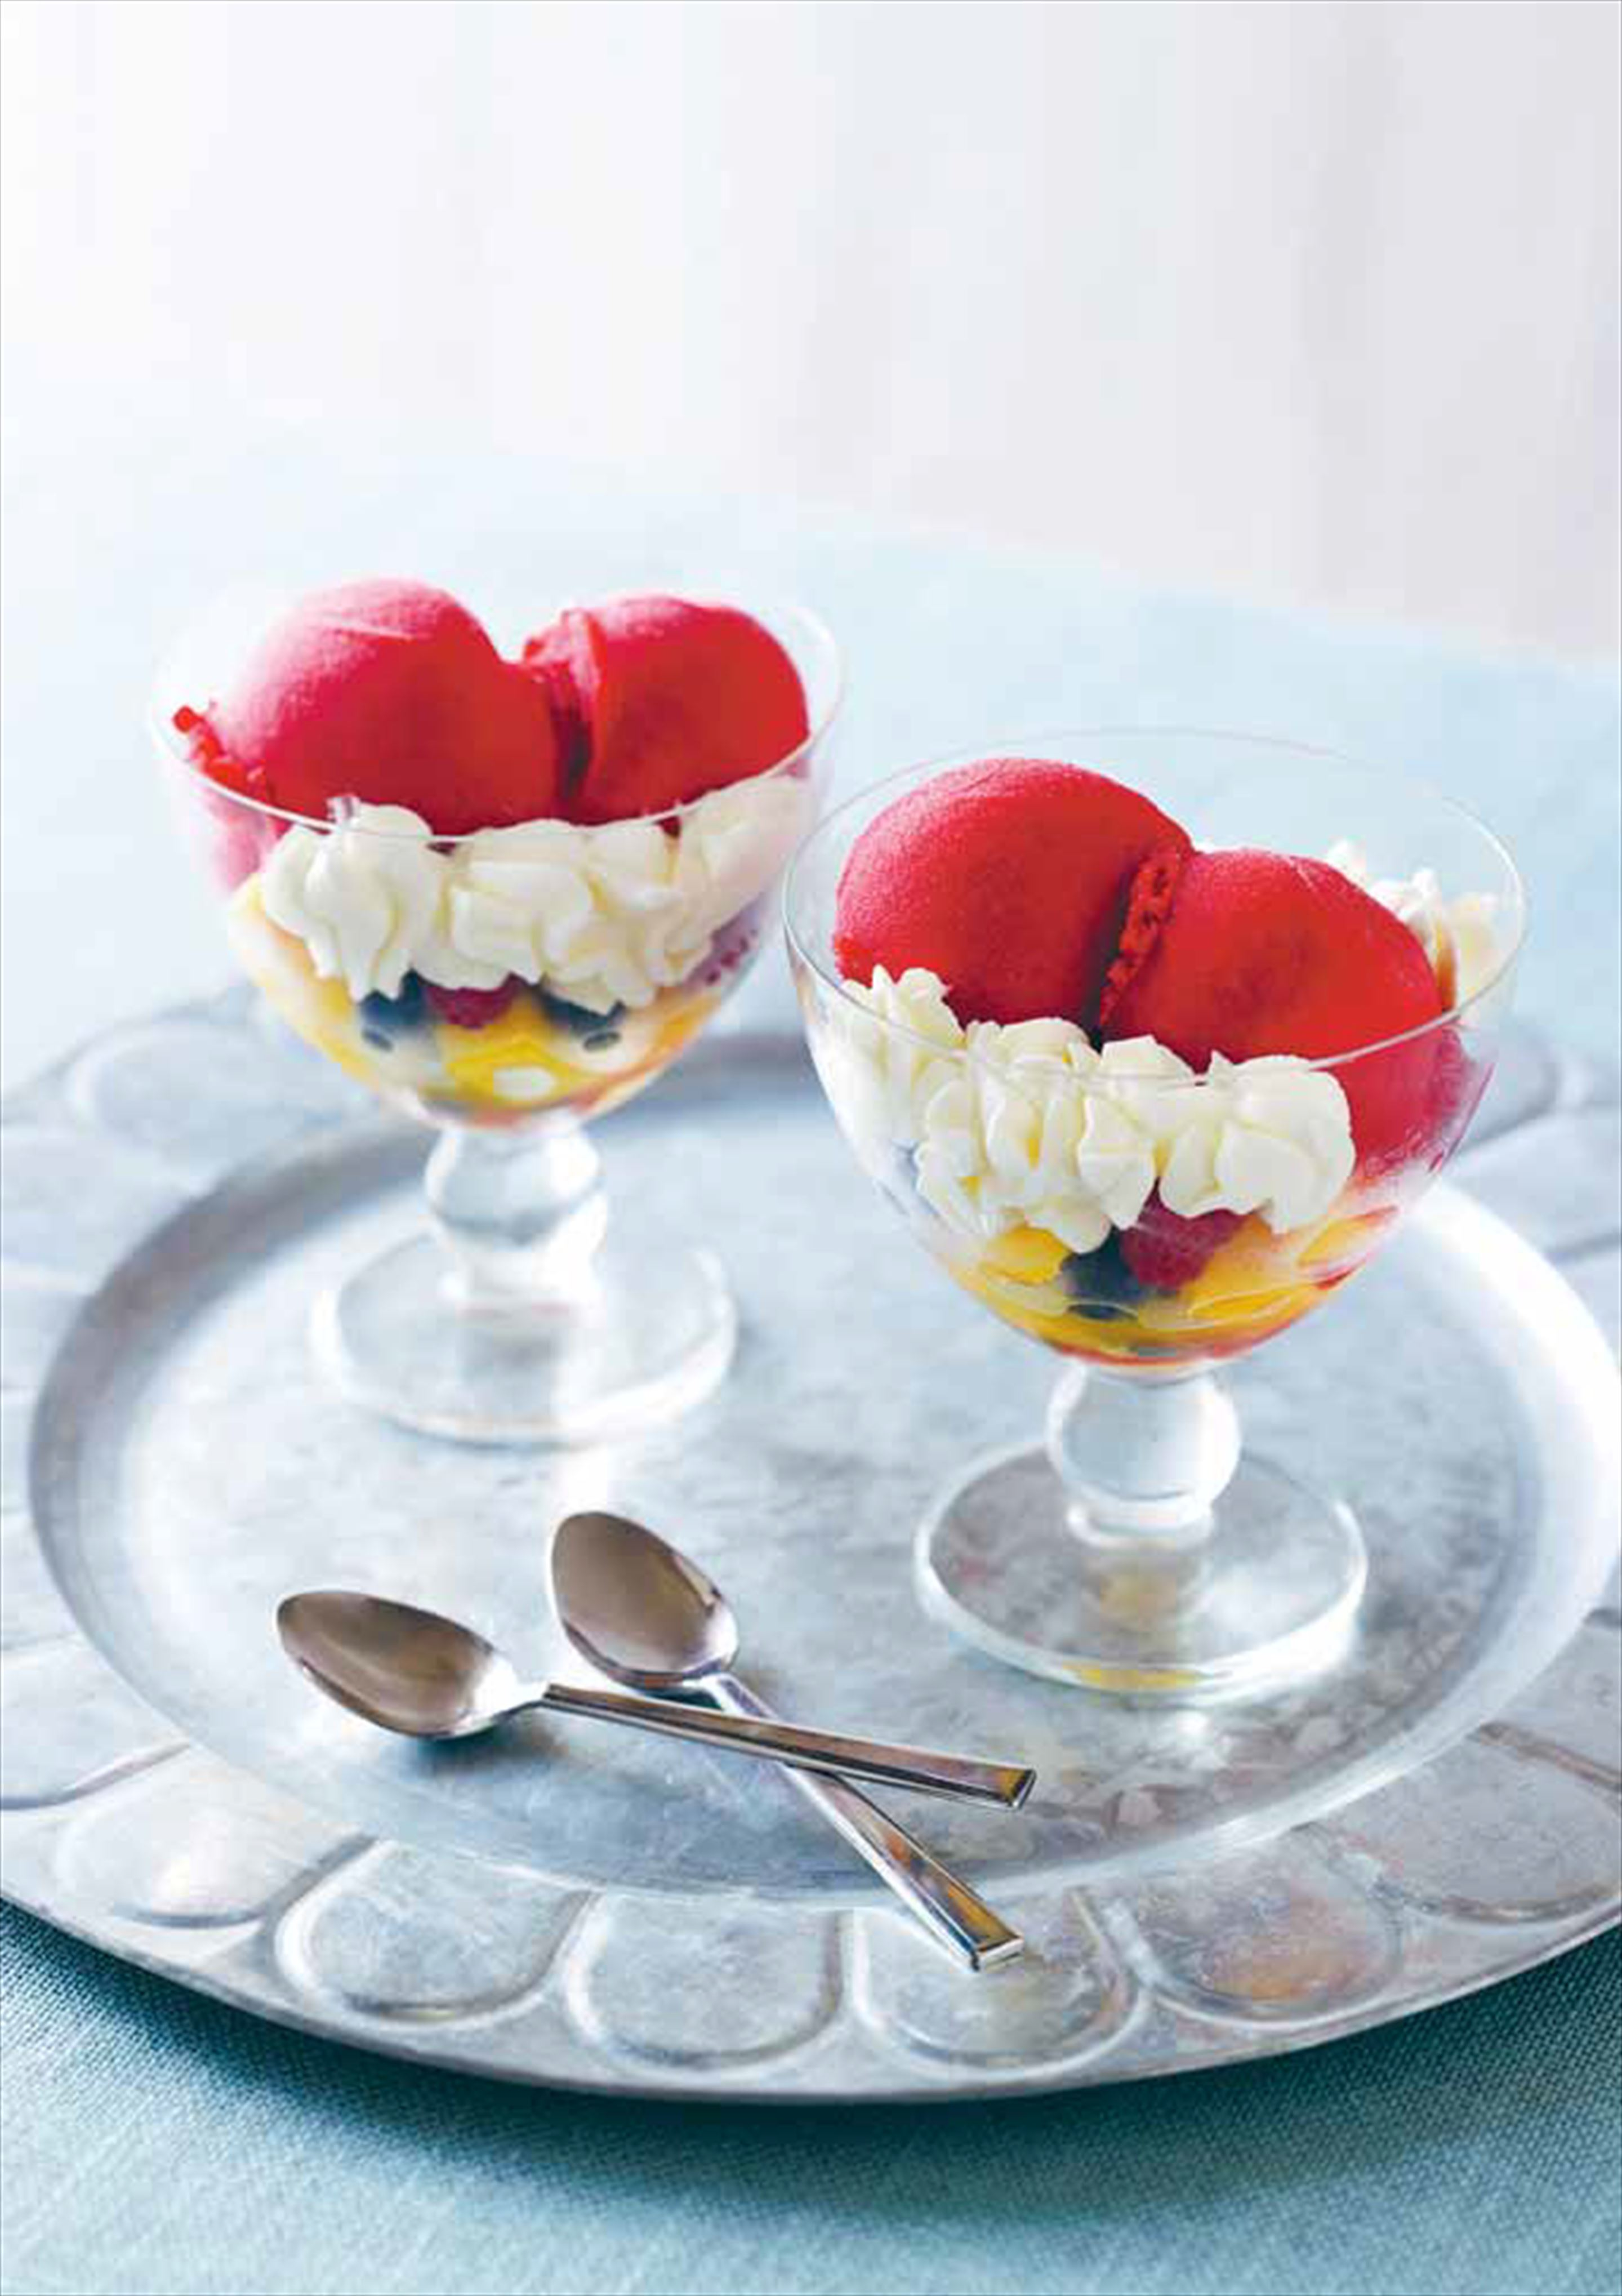 Raspberry sorbet in a fruit coupe